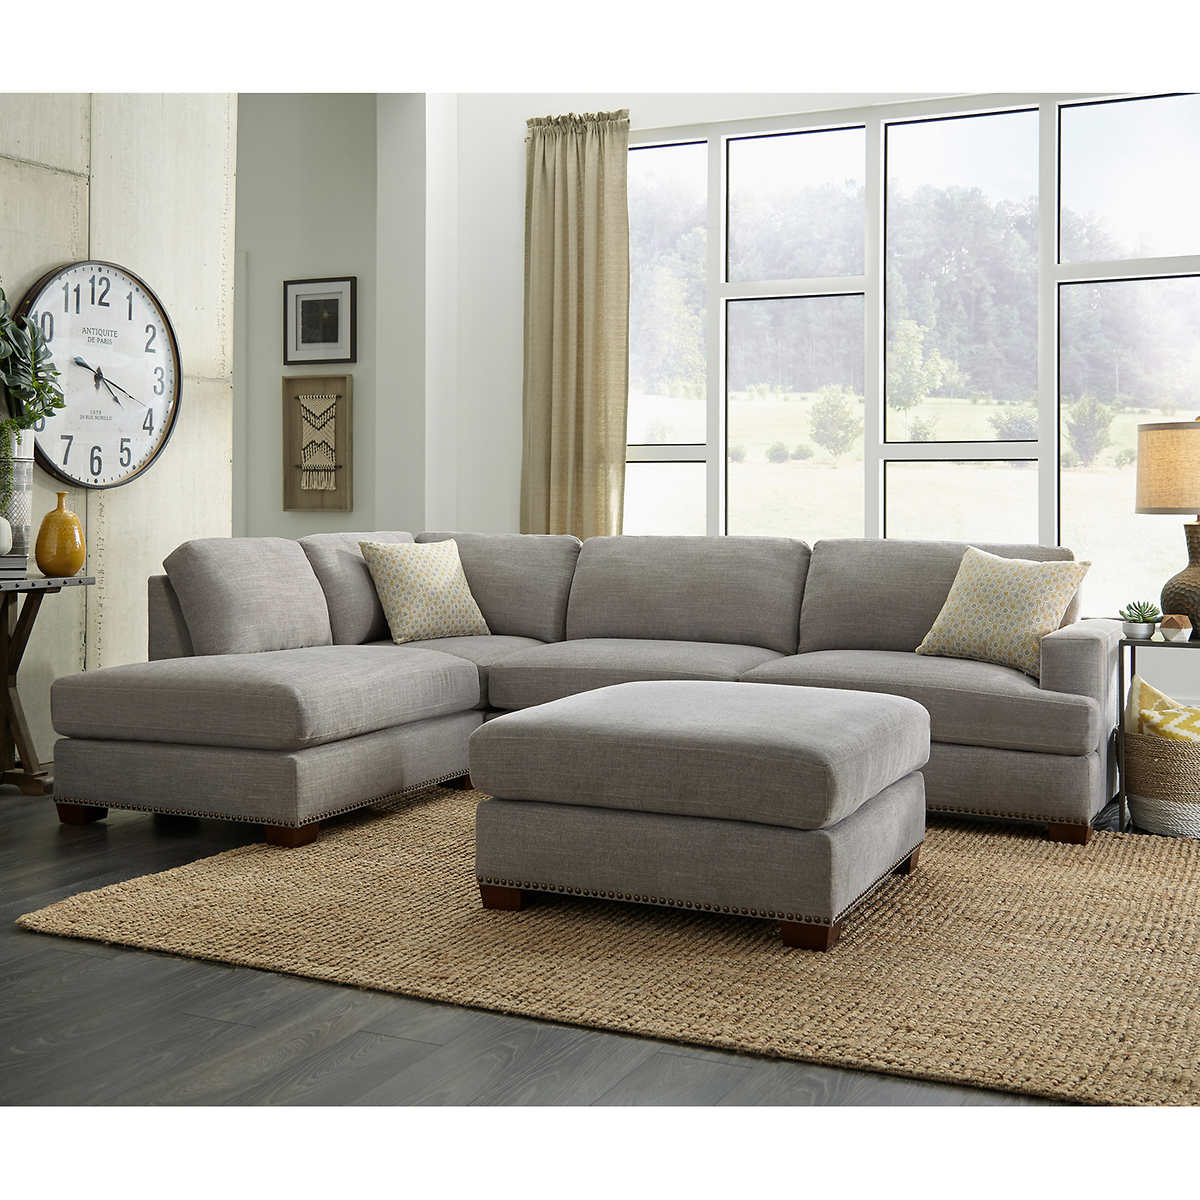 sectional couch costco – bandbtrees